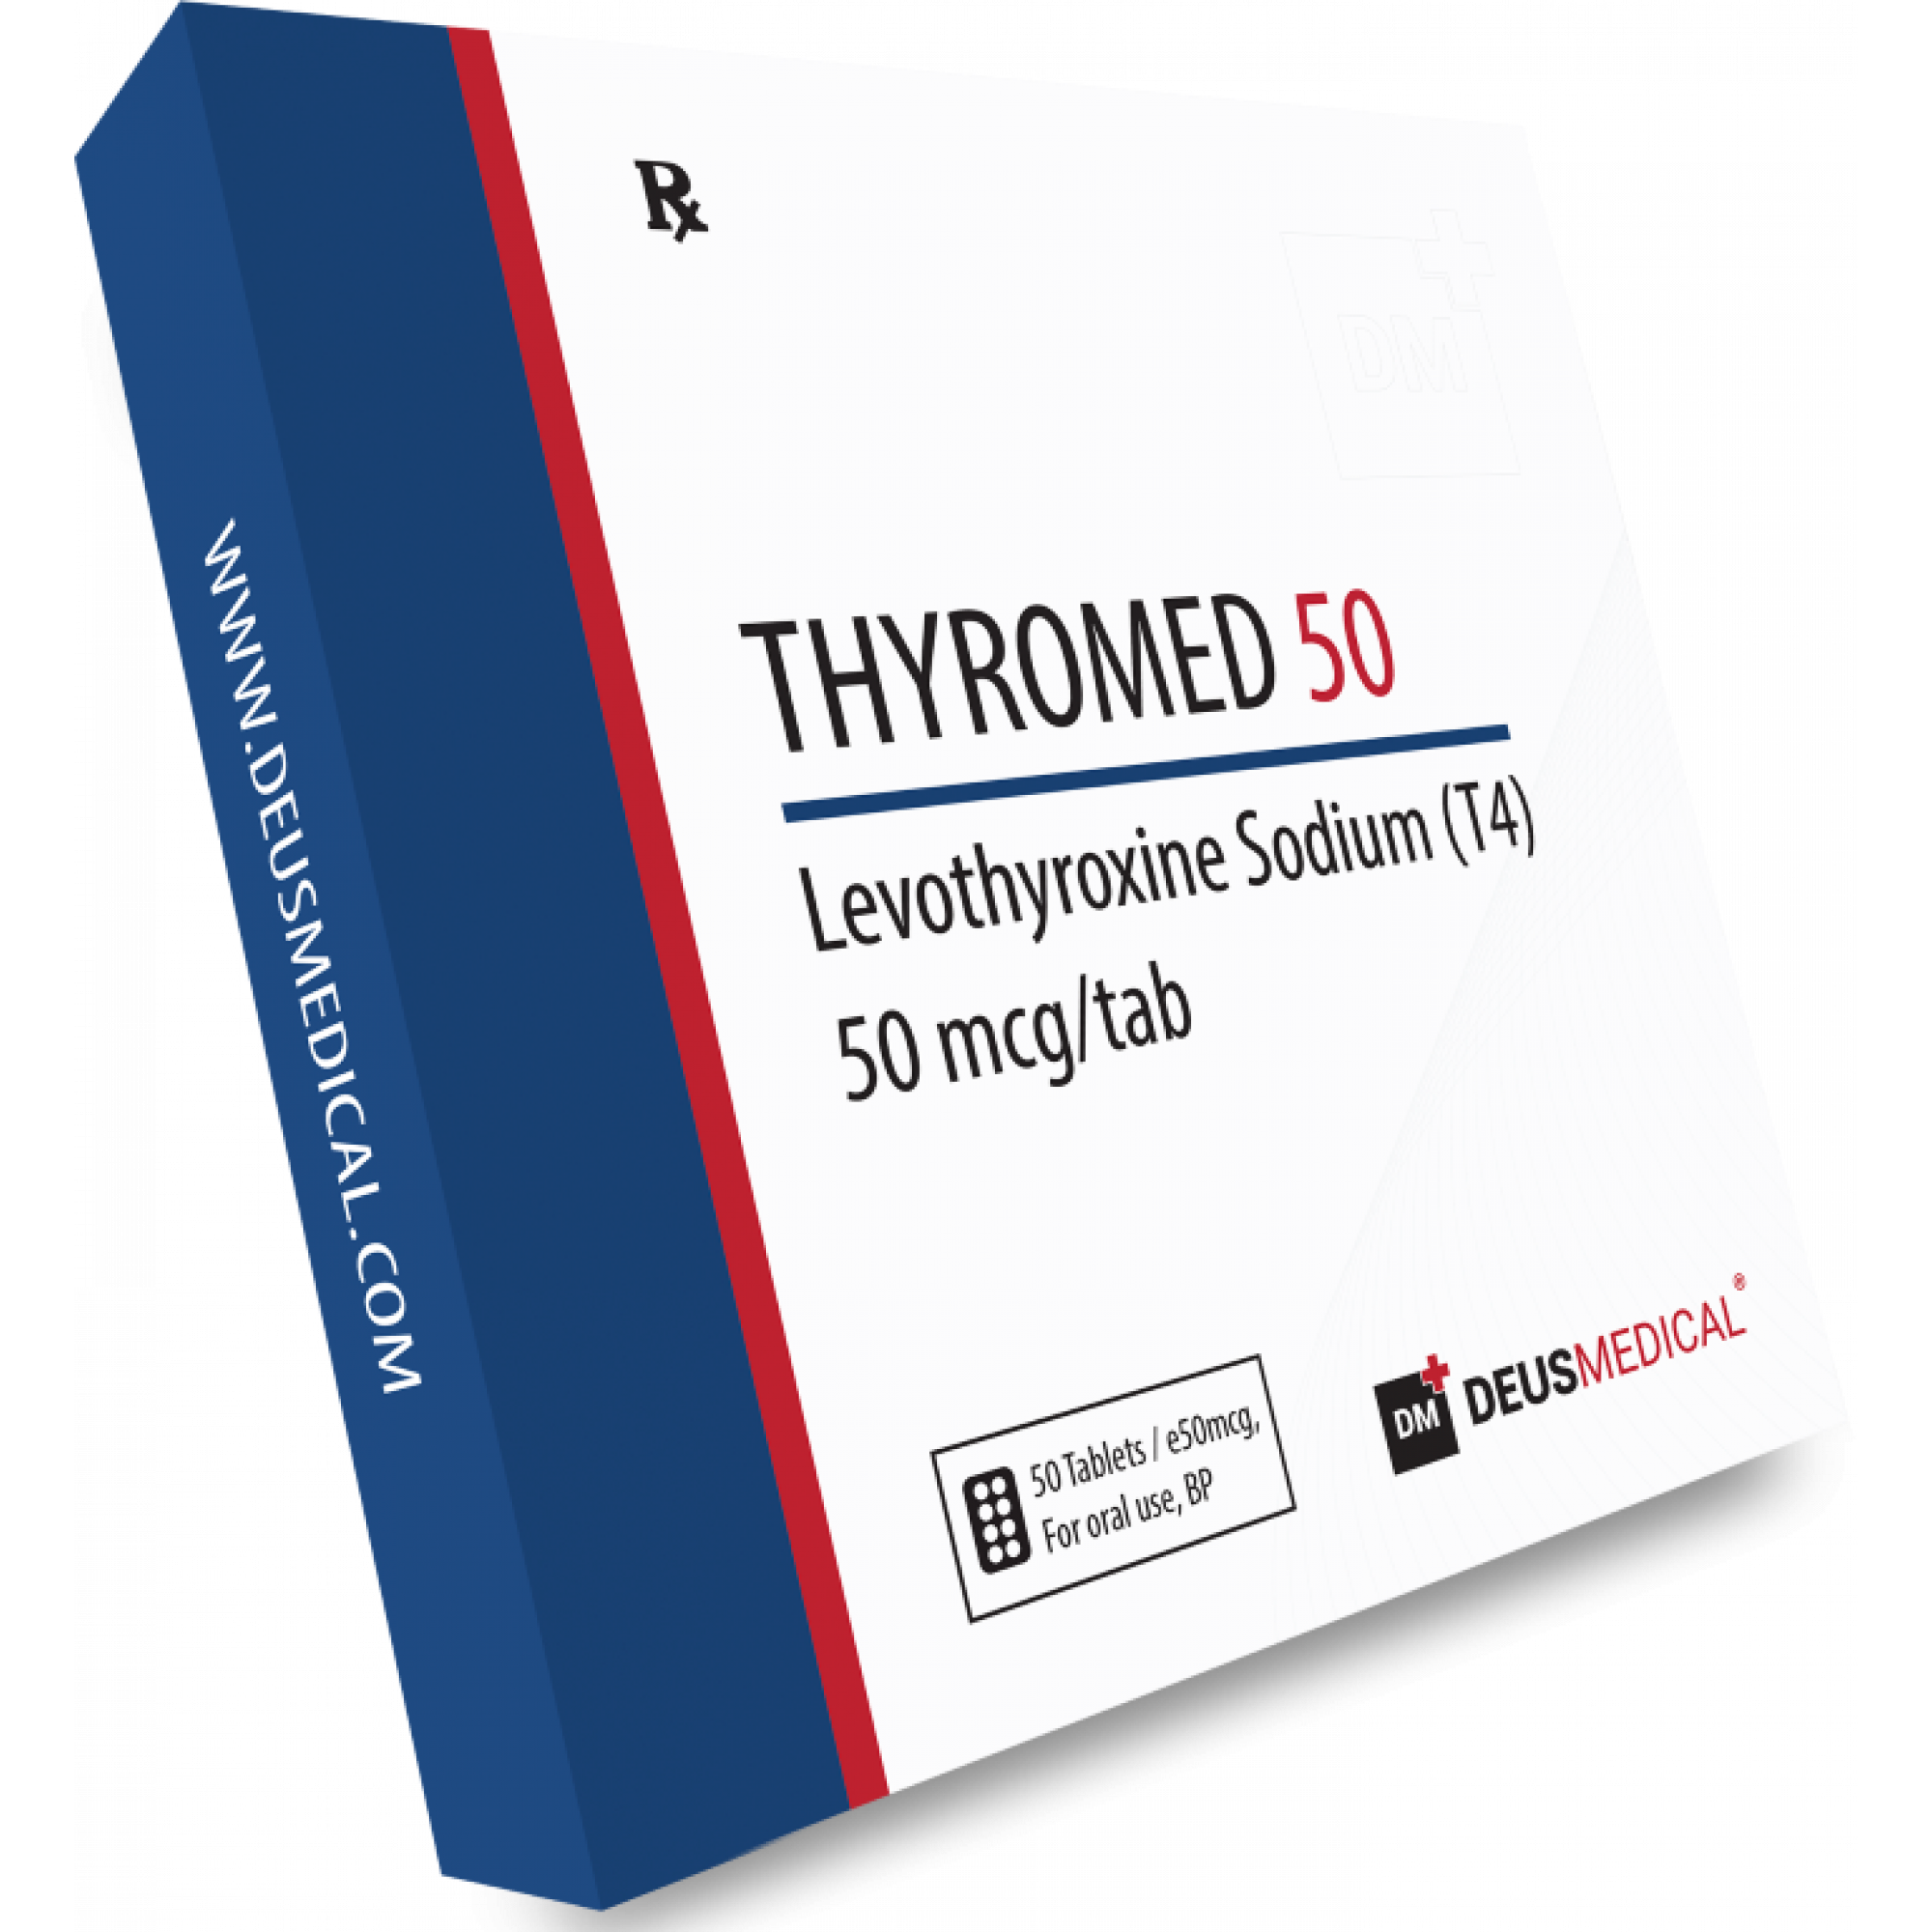 THYROMED 50 (Levothyroxine Sodium (T4))